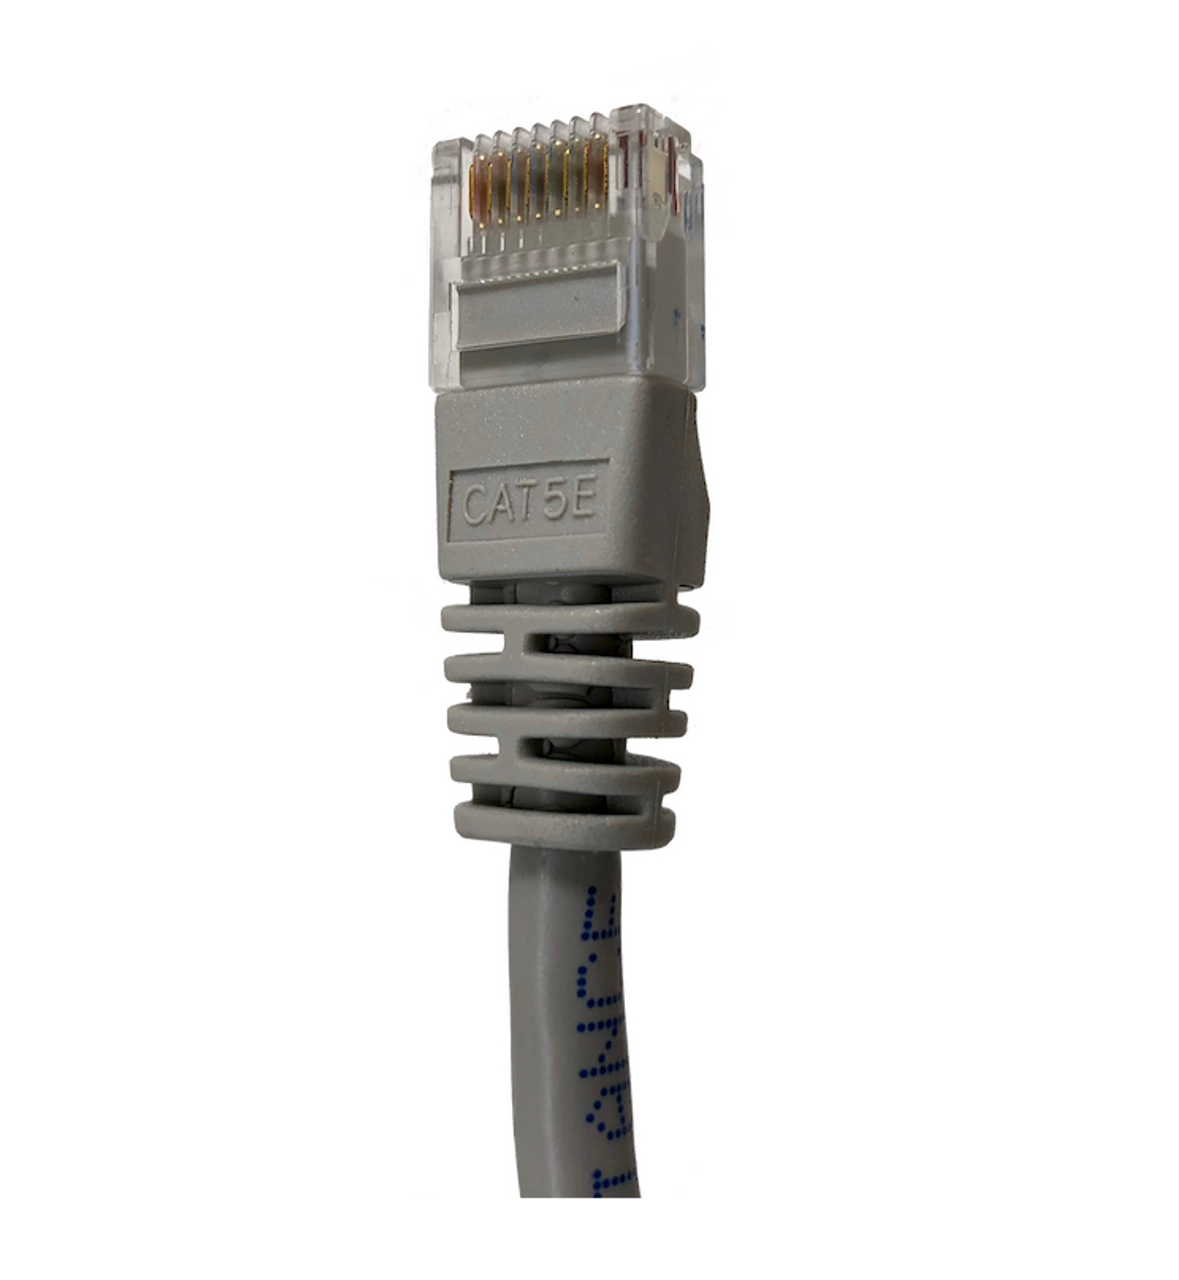 Category 5E UTP RJ45 Patch Cable Gray - 1 ft